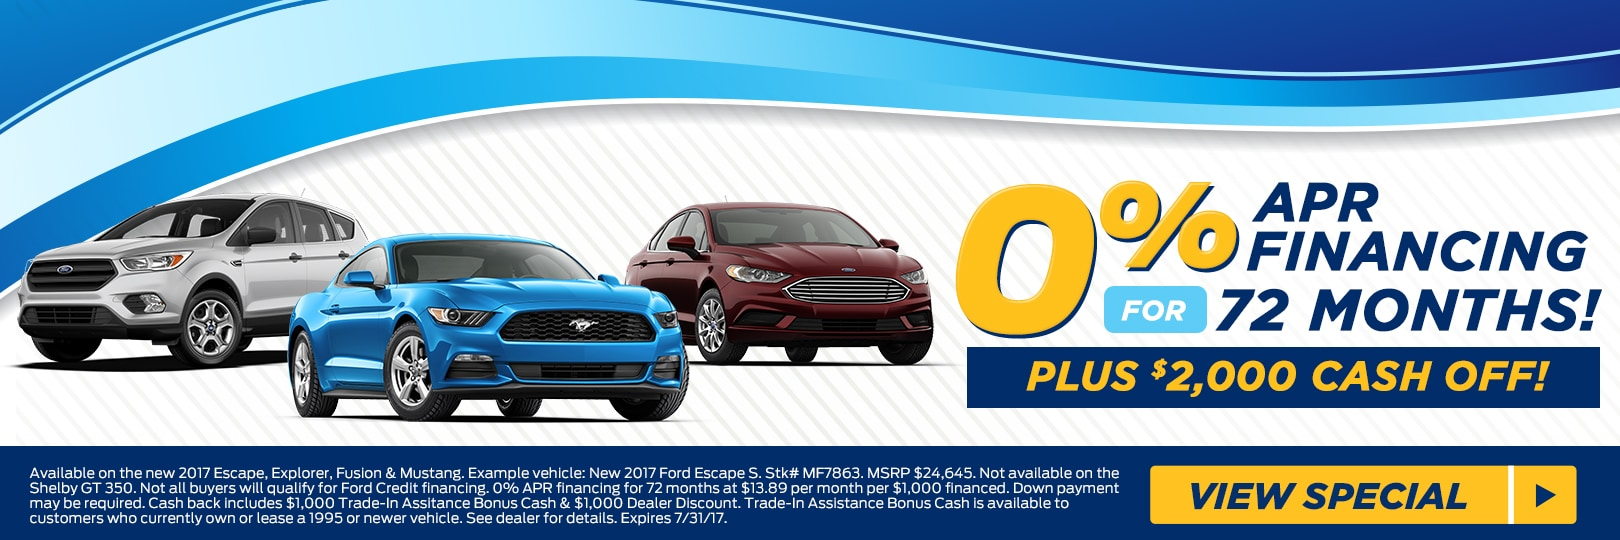 0 apr financing for 72 months at fred beans ford mechancisburg pa